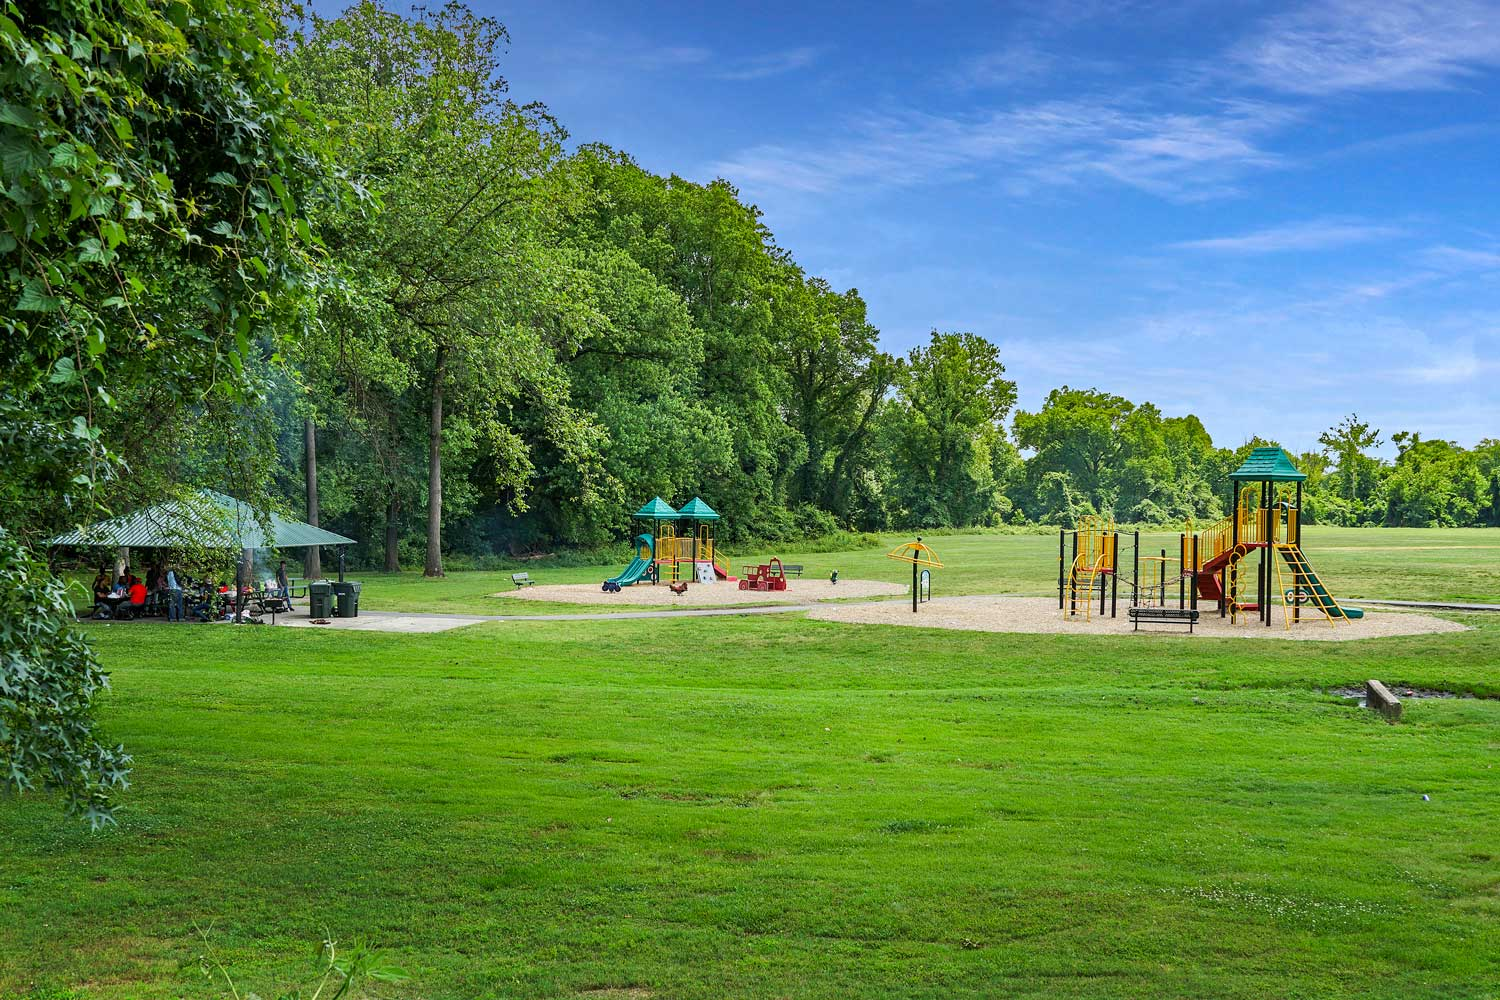 Chillum Community Park is 5 minutes from Kirkwood Apartments in Hyattsville, MD